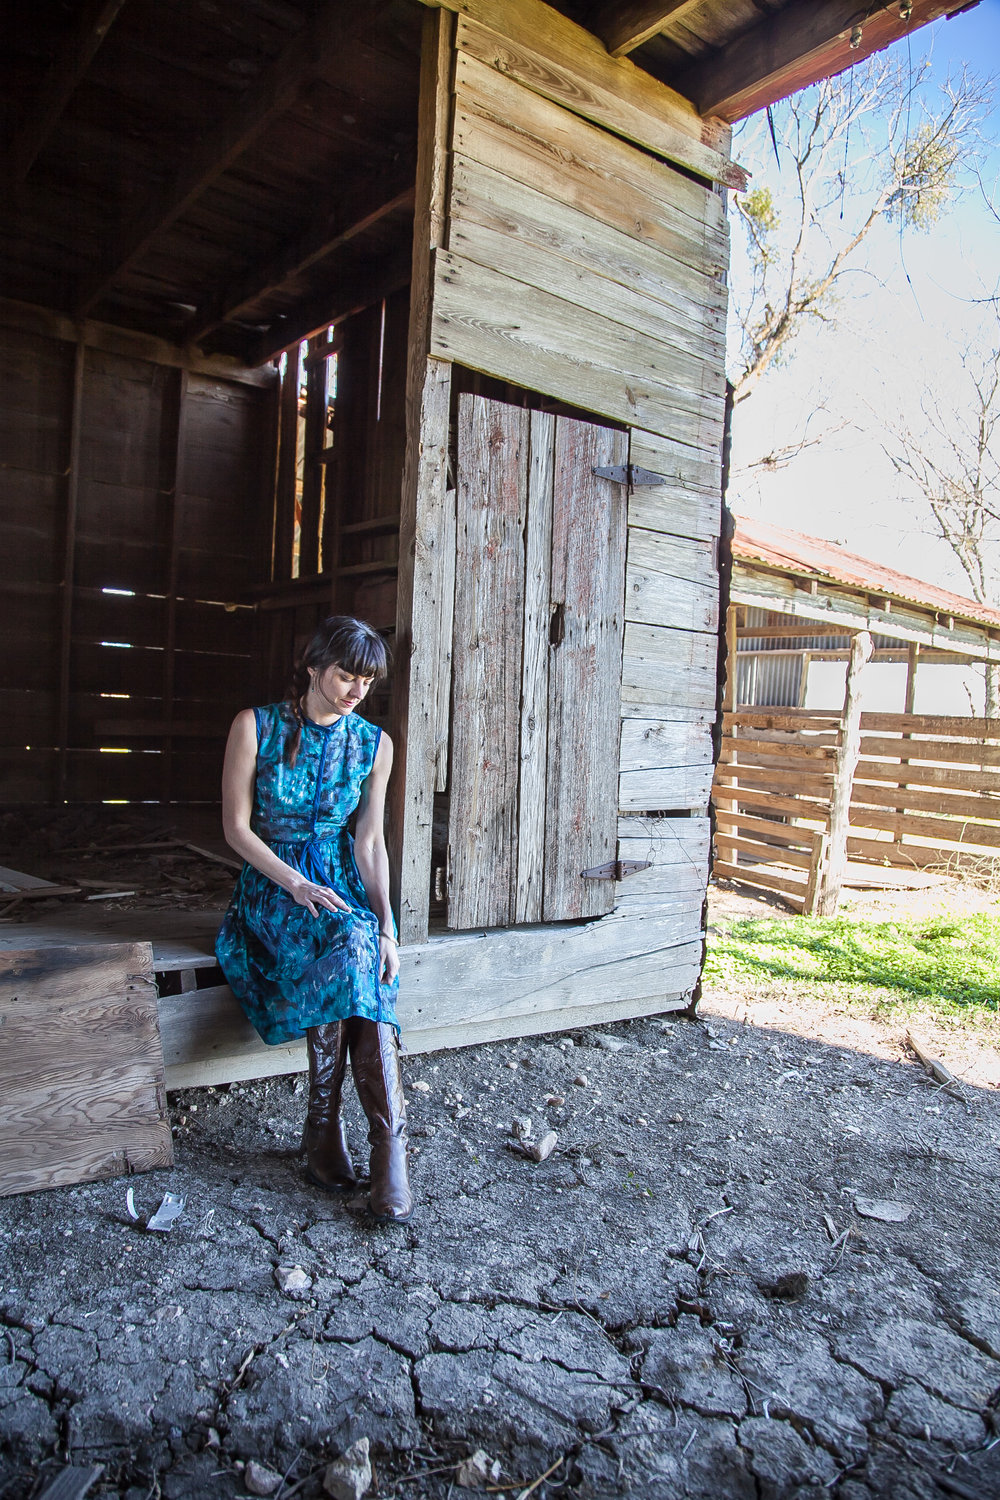 Leslie of Dalena Vintage exploring the Texas countryside in a 1950s dress and 1970s shawl from her shop, Dalena Vintage.